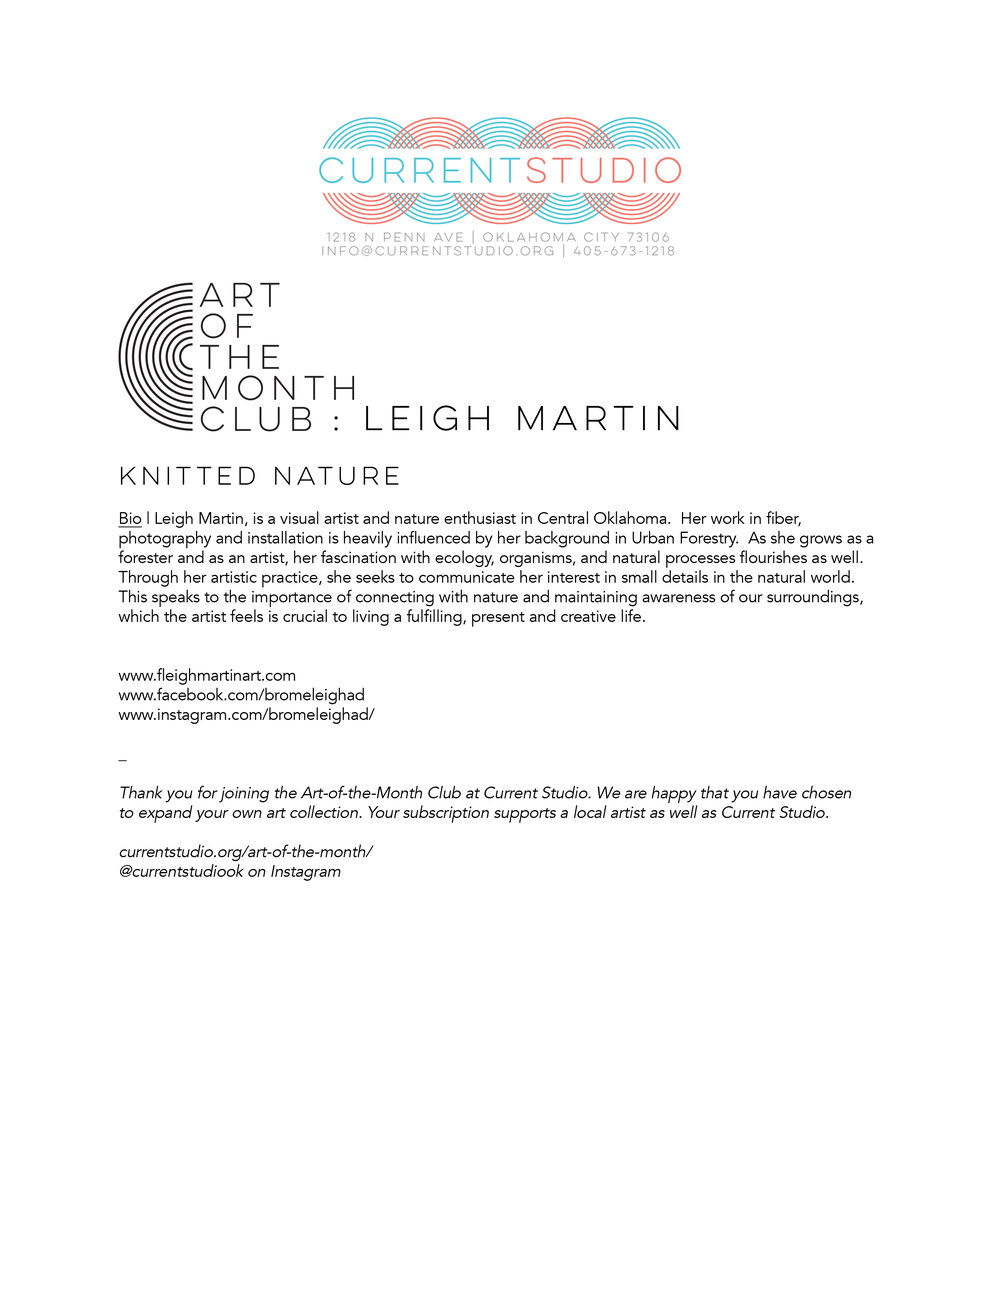 art of the month artist sheet - leigh martin.jpg